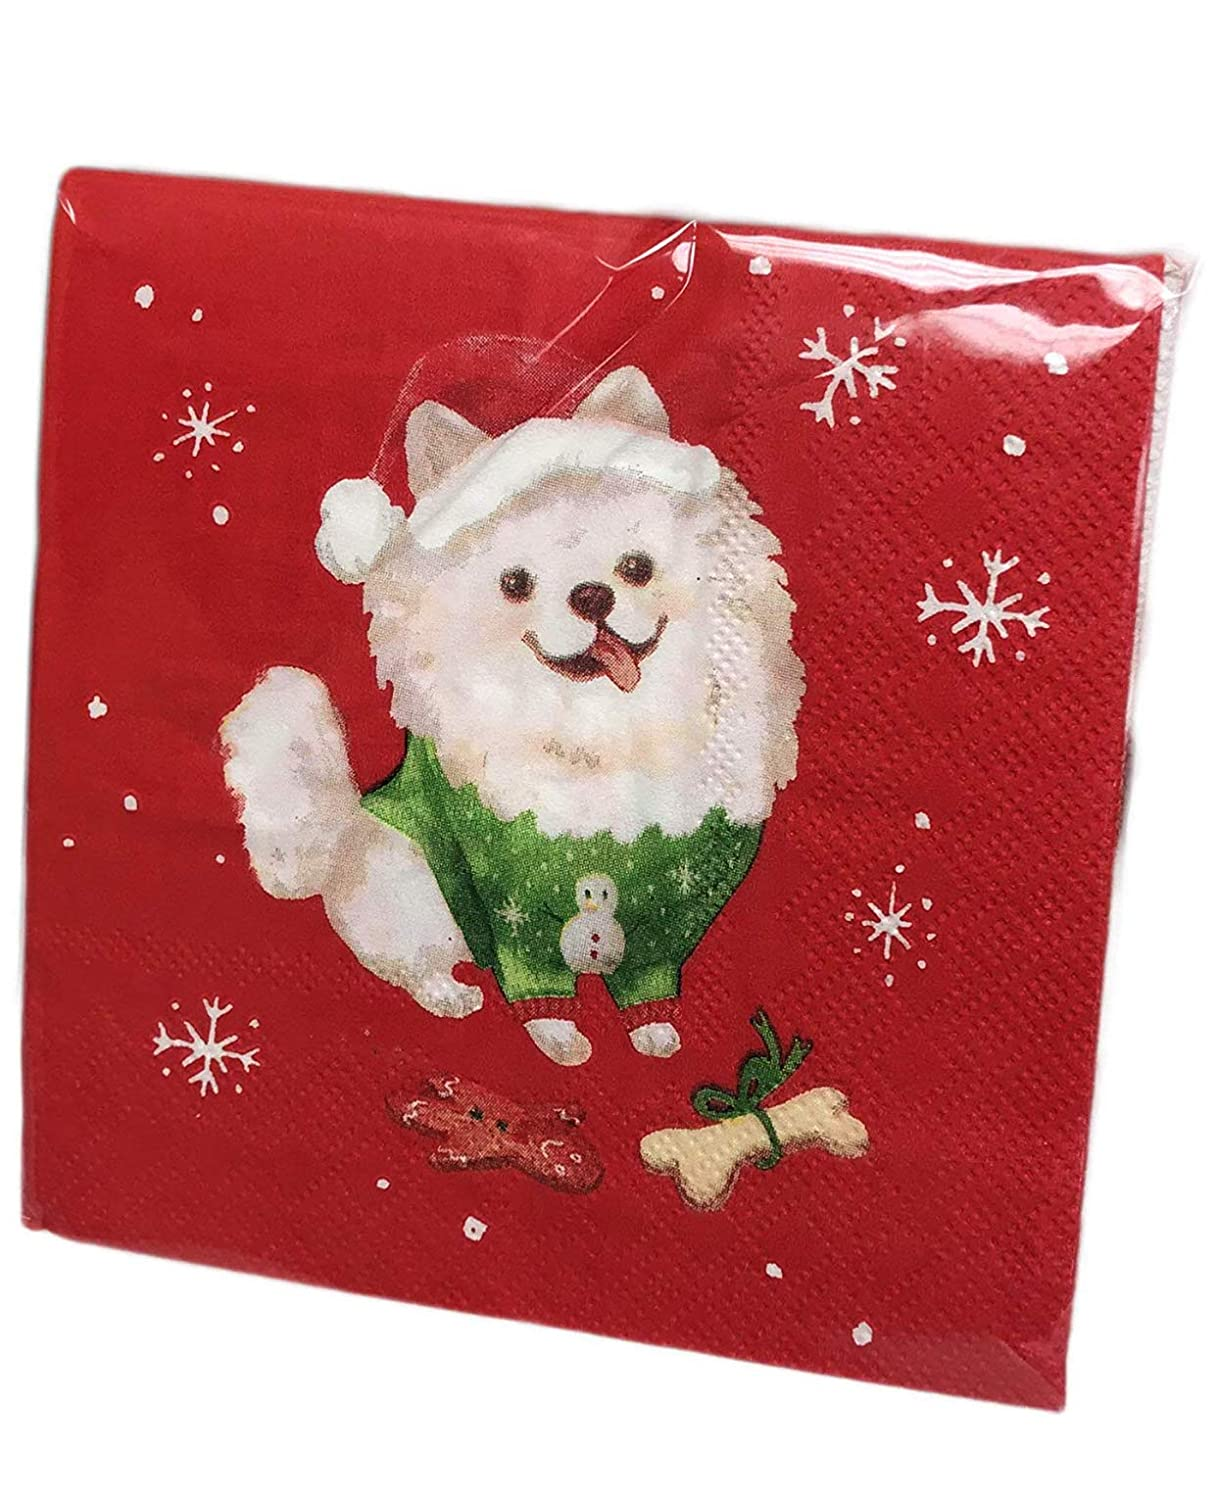 Cute Christmas Pomeranian Dog Wearing Holiday Sweater /& Santa Hat 40 Pack 3 Ply Novelty Paper Cocktail Beverage Holiday Drink Party Napkins